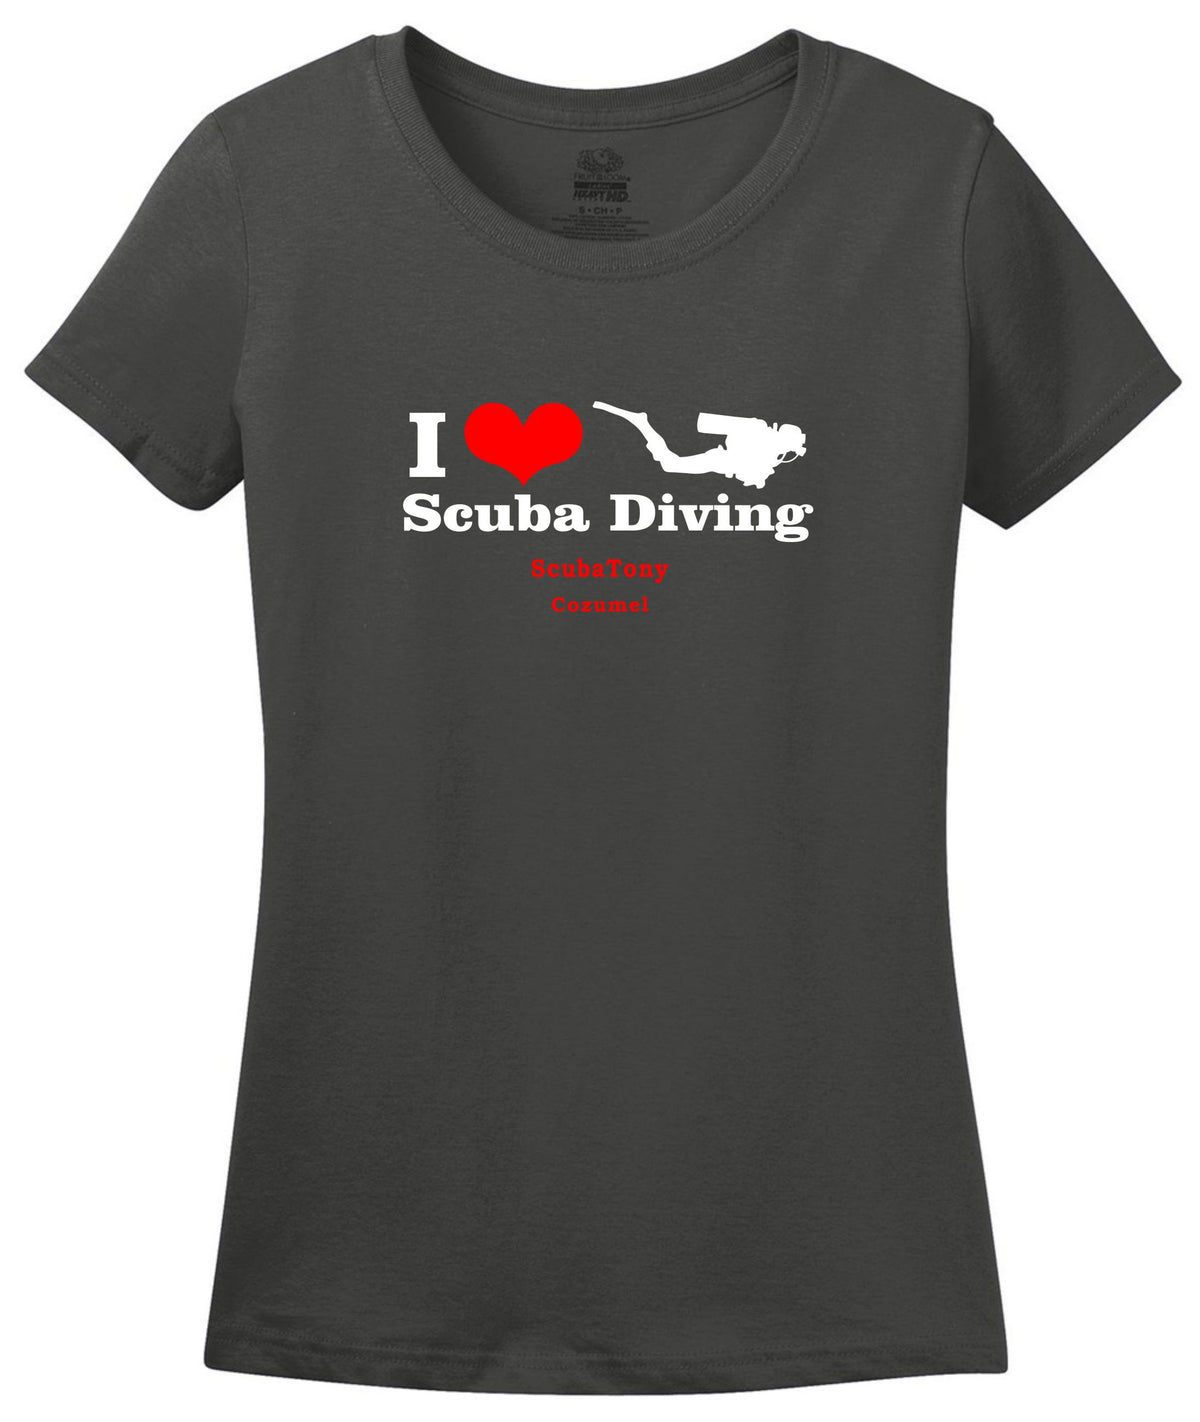 Women's I Love Scuba Diving